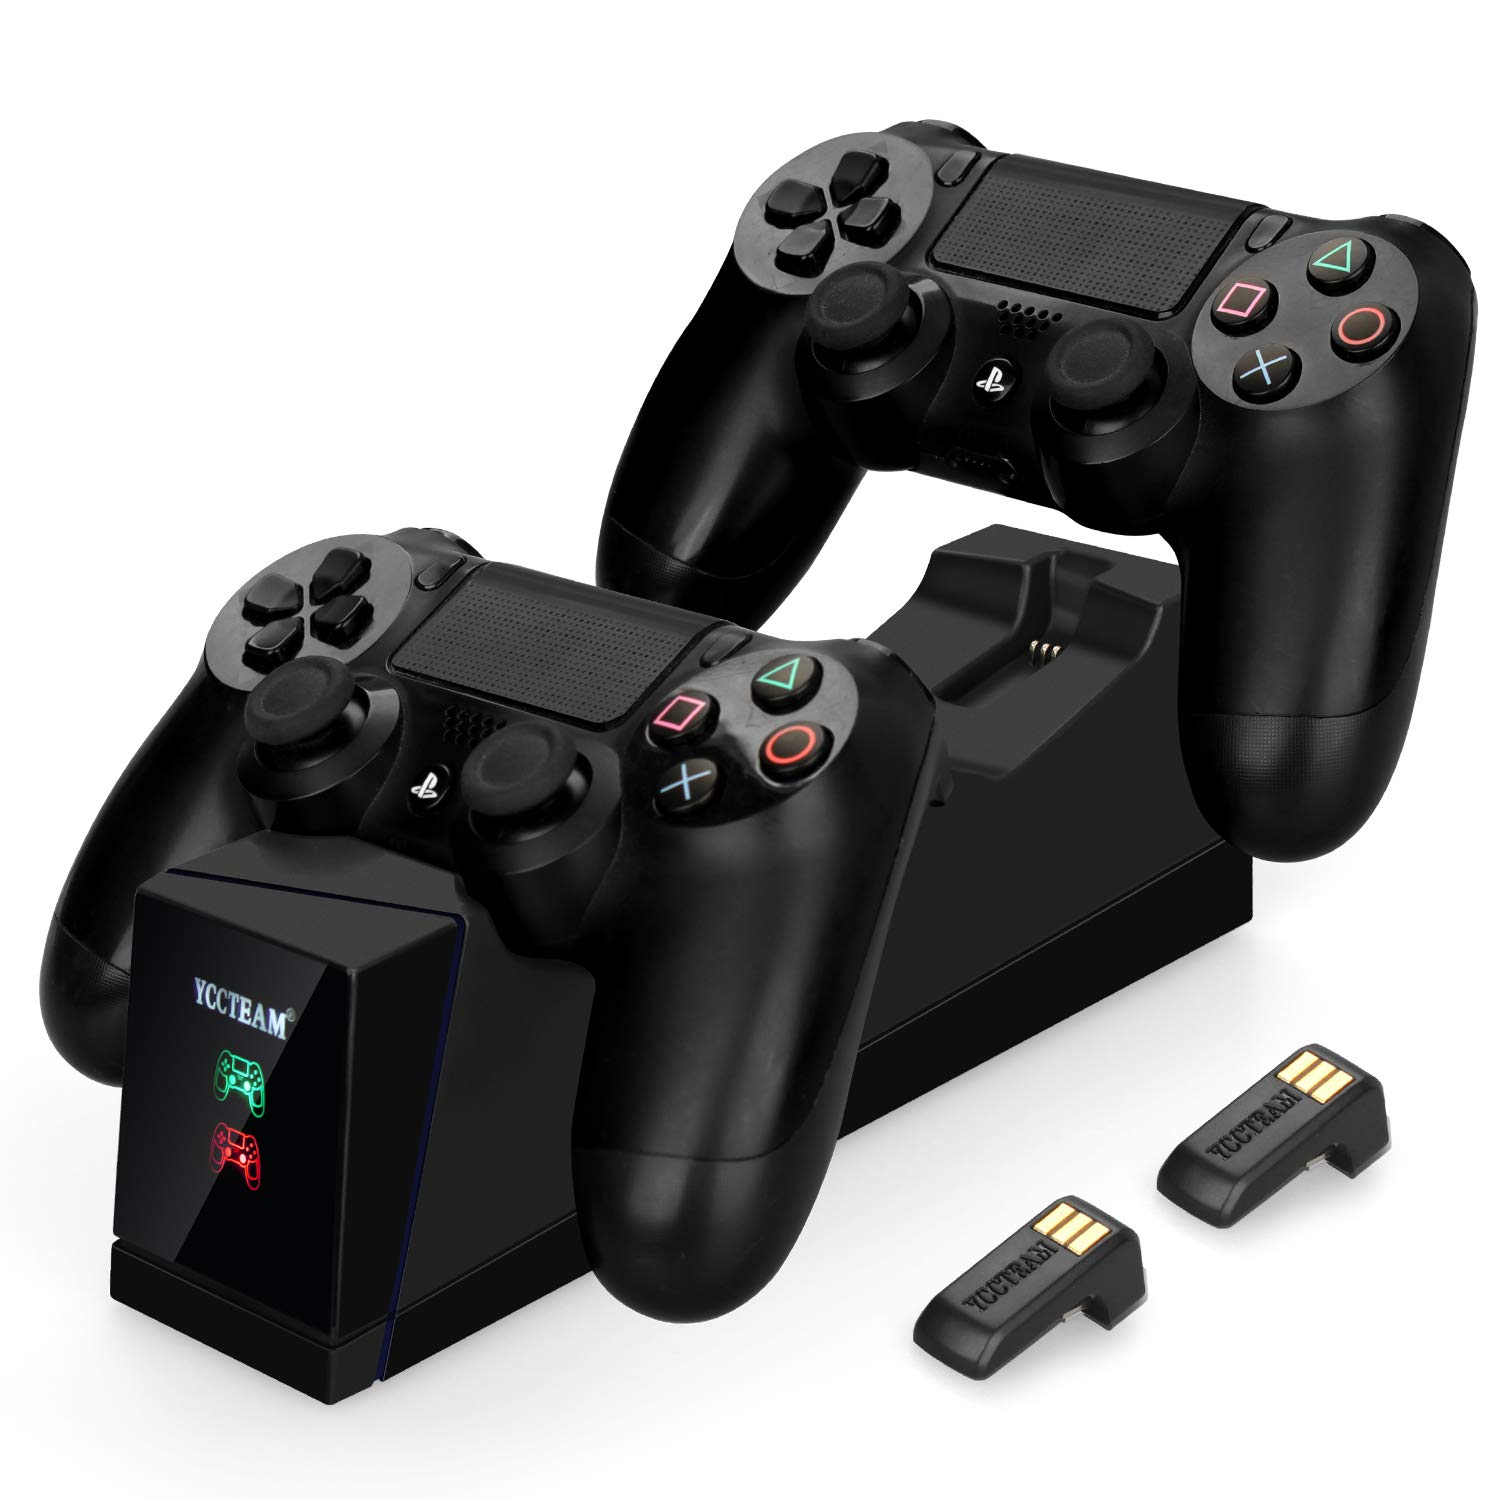 PS4 Controller Charger,Dualshock 4 Dual USB Fast Charging Docking Station Stand for Sony Playstation 4 PS4,PS4 Pro,PS4 Slim Controller,Black